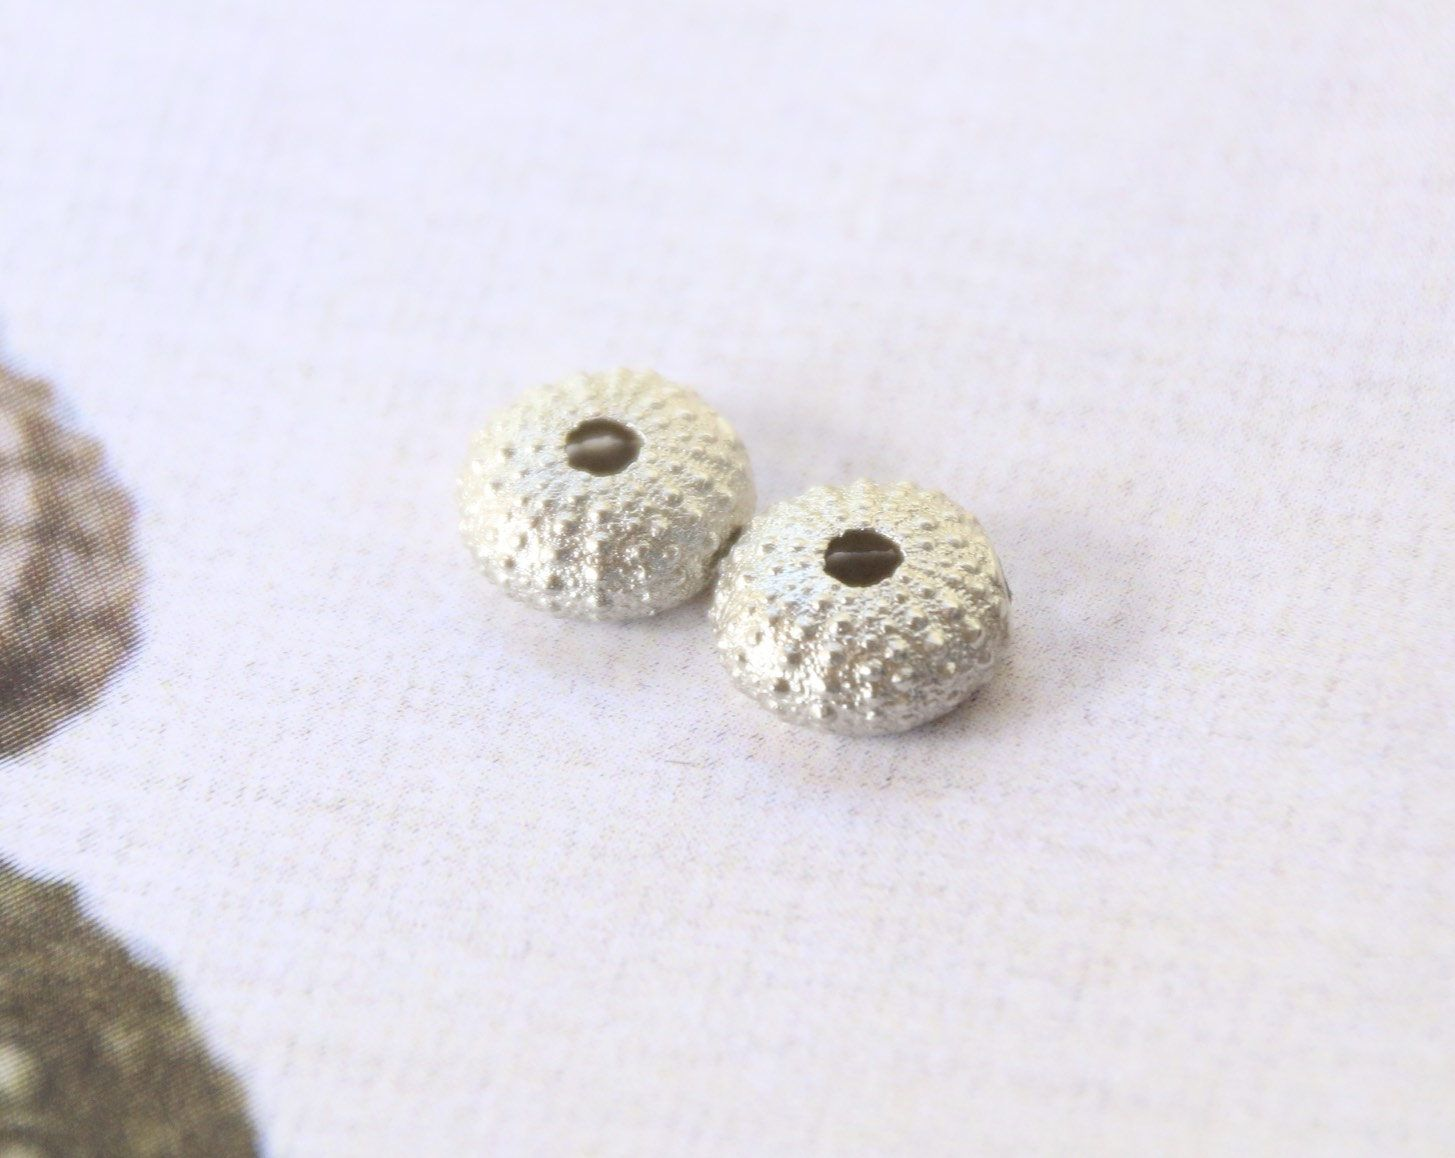 Sea Urchin Earrings. Sterling Silver Seashell Studs, Beach Wedding Bridesmaid Gift. Ocean Nautical Jewelry, Girls Birthday Gift, Modern by apetitesparkle on Etsy